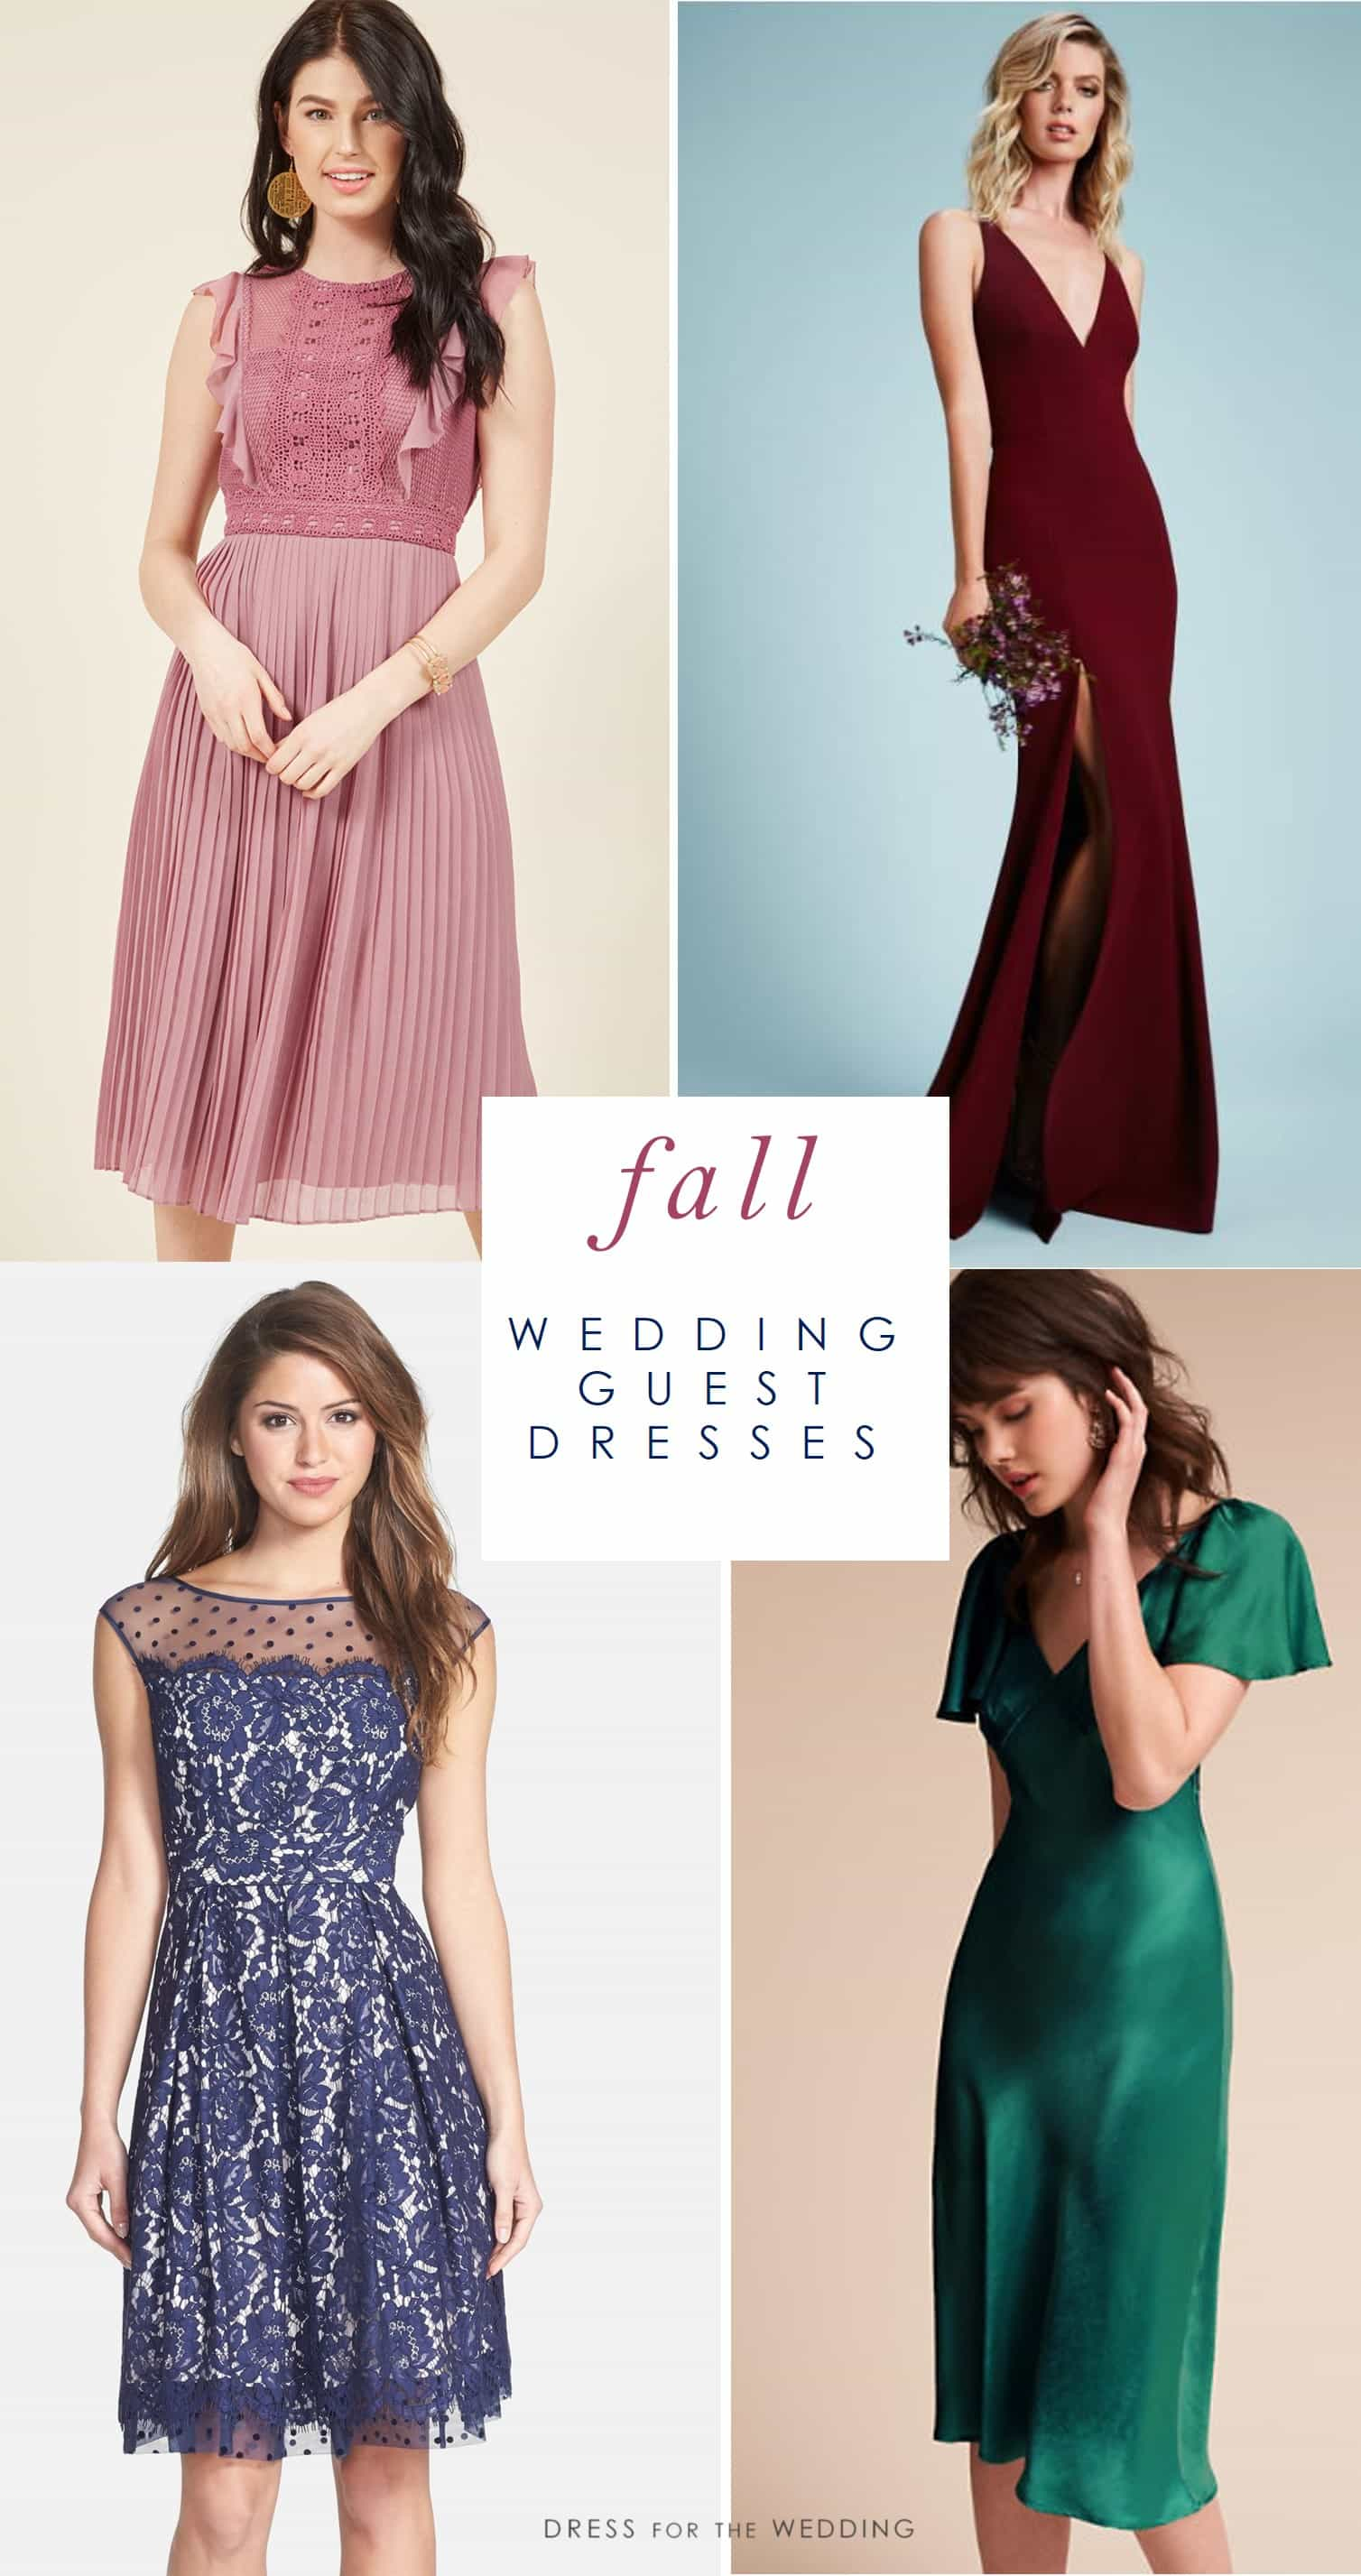 Fall wedding guest dresses what to wear to a fall wedding for Dresses for afternoon wedding